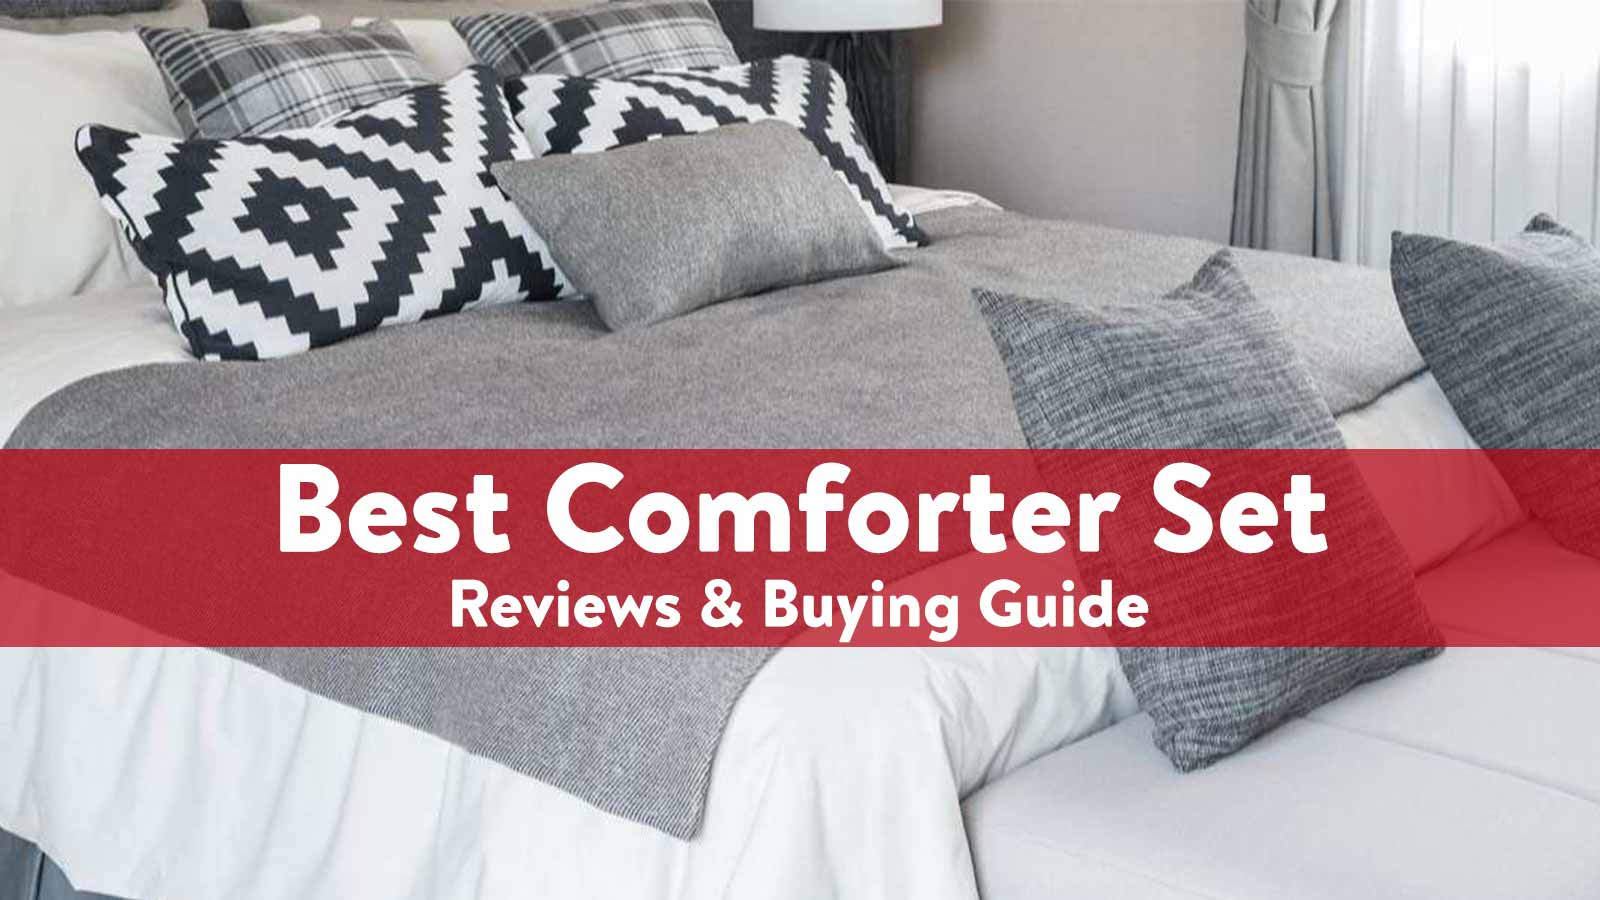 10 Best Comforter Sets Of 2021 For Queen And King Size Bed